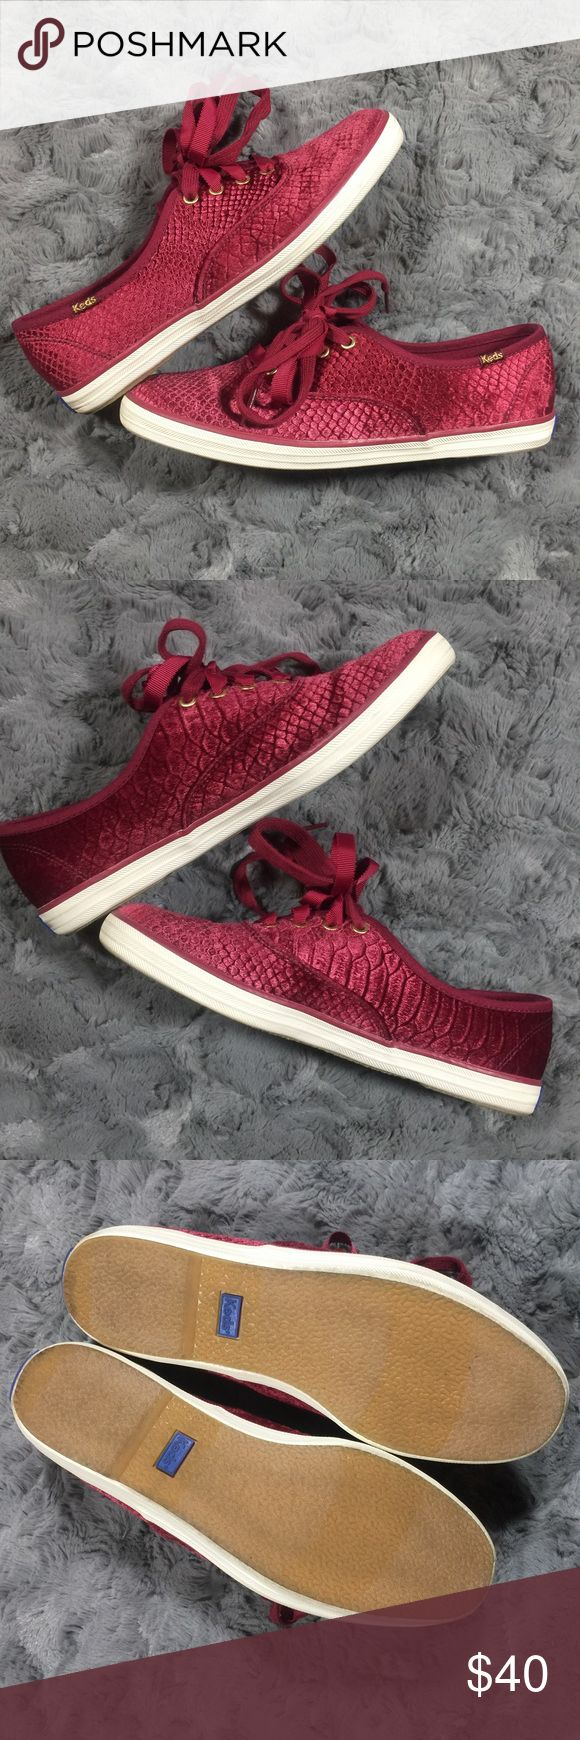 Keds Champion Snaked Embossed Velvet A velvety, snaked-embossed finish lends impeccable modern glamour to a favorite low profile sneaker. Fits true to size Keds Shoes Sneakers